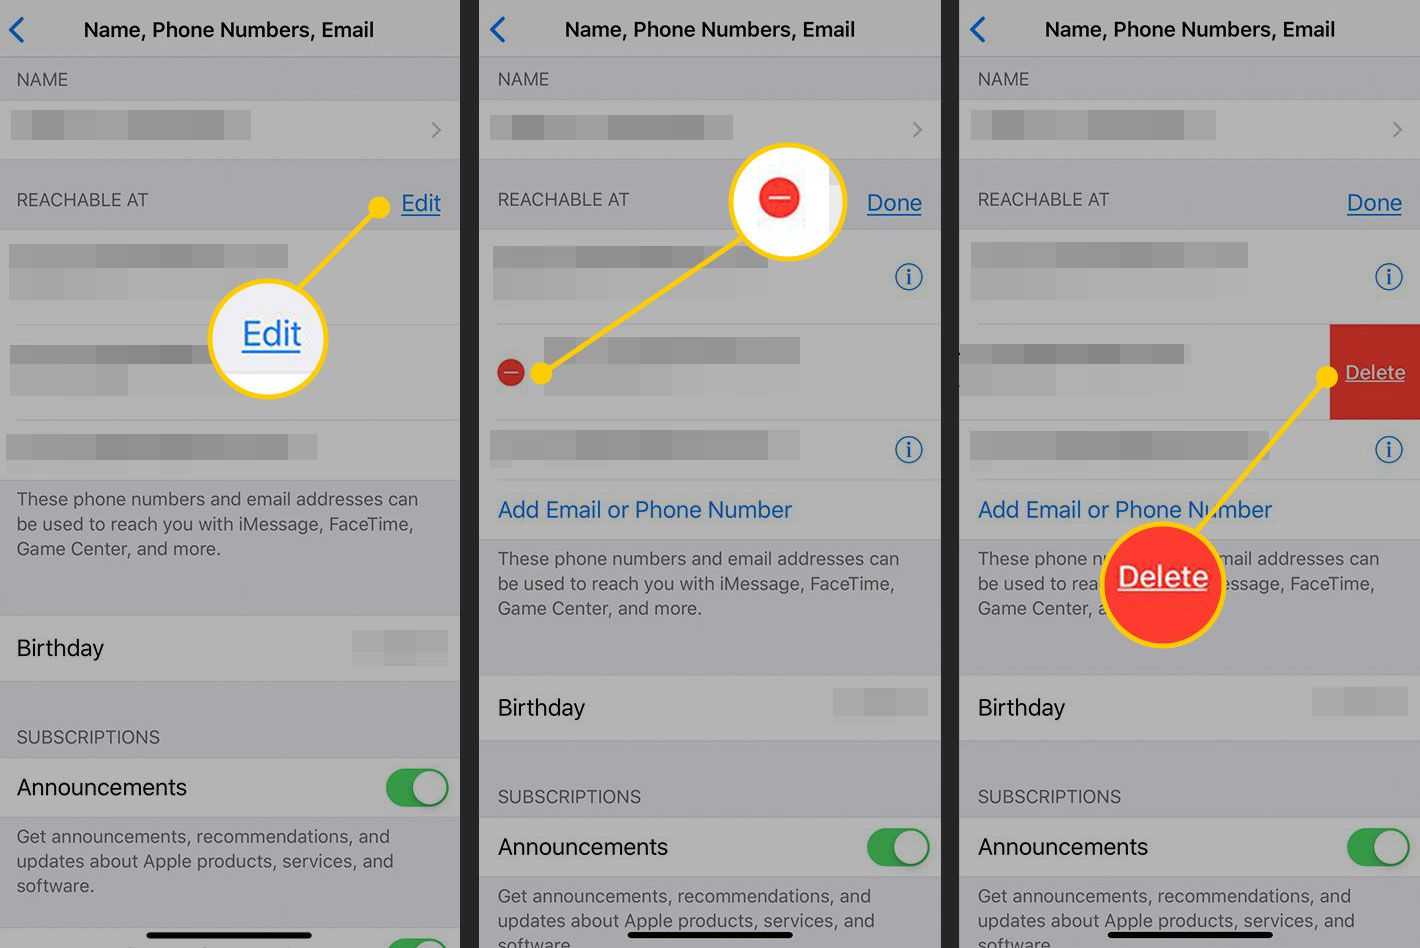 Removing a contact from iOS Settings